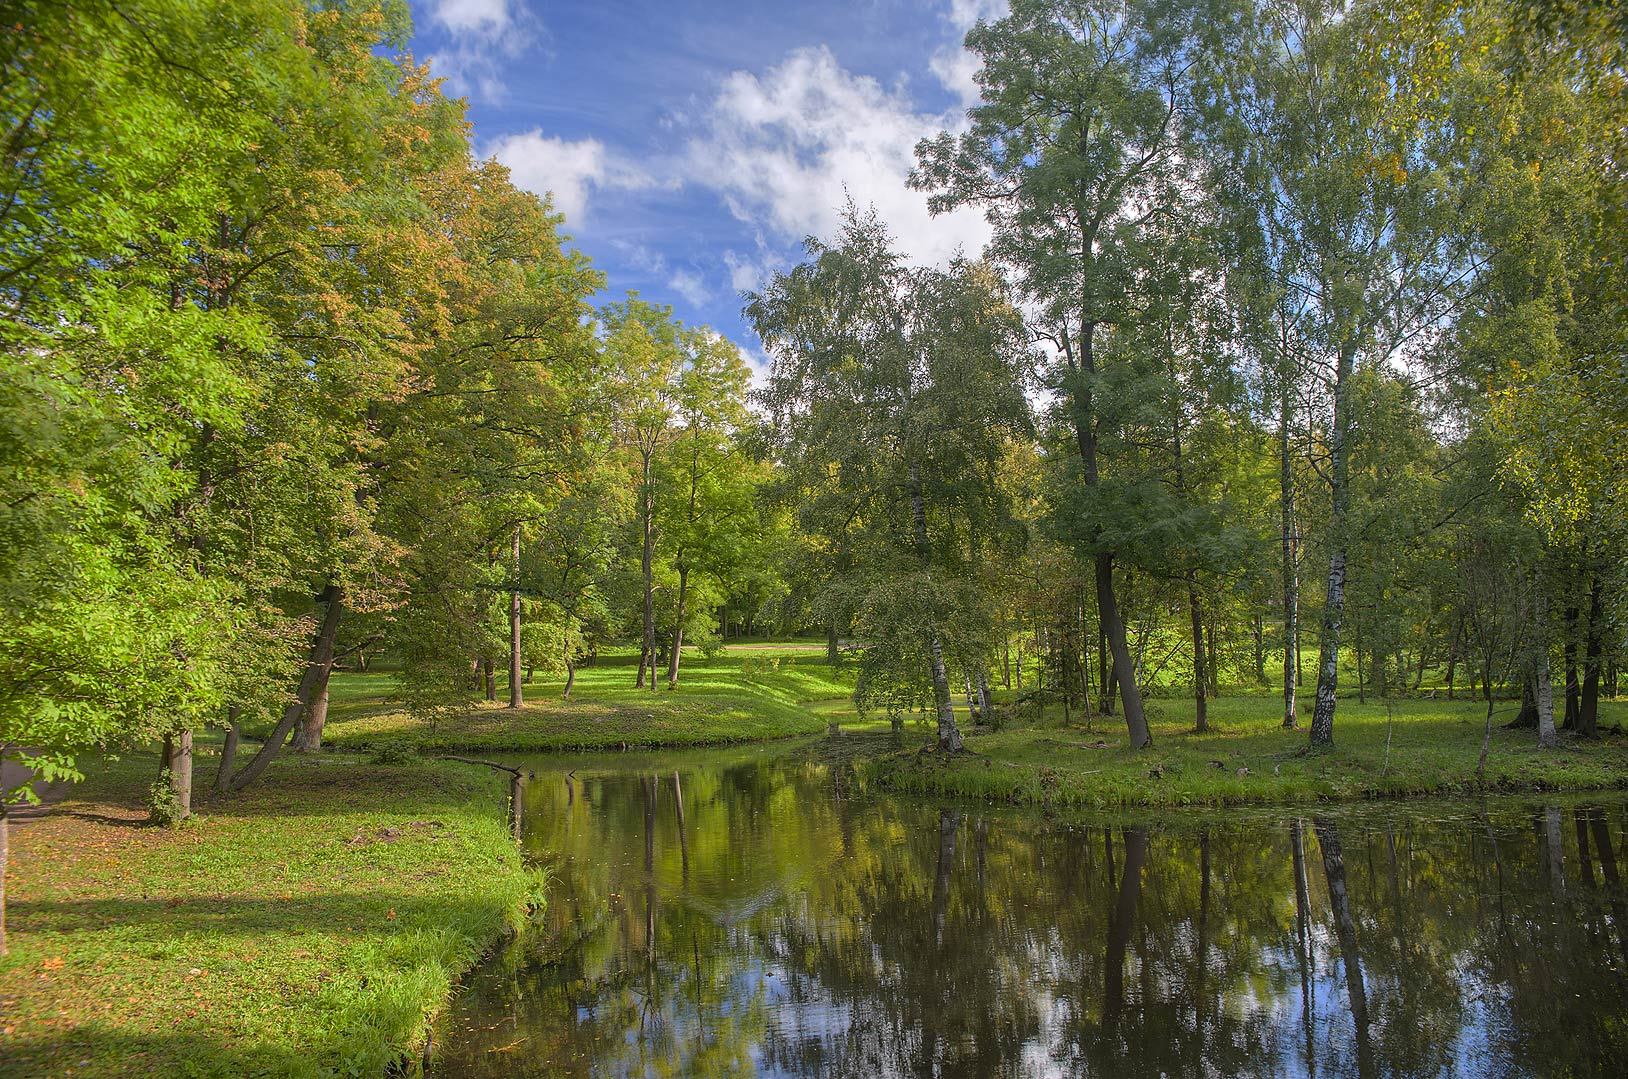 Area of Aquatic Labyrinth in Gatchina Park. Gatchina, a suburb of St.Petersburg, Russia